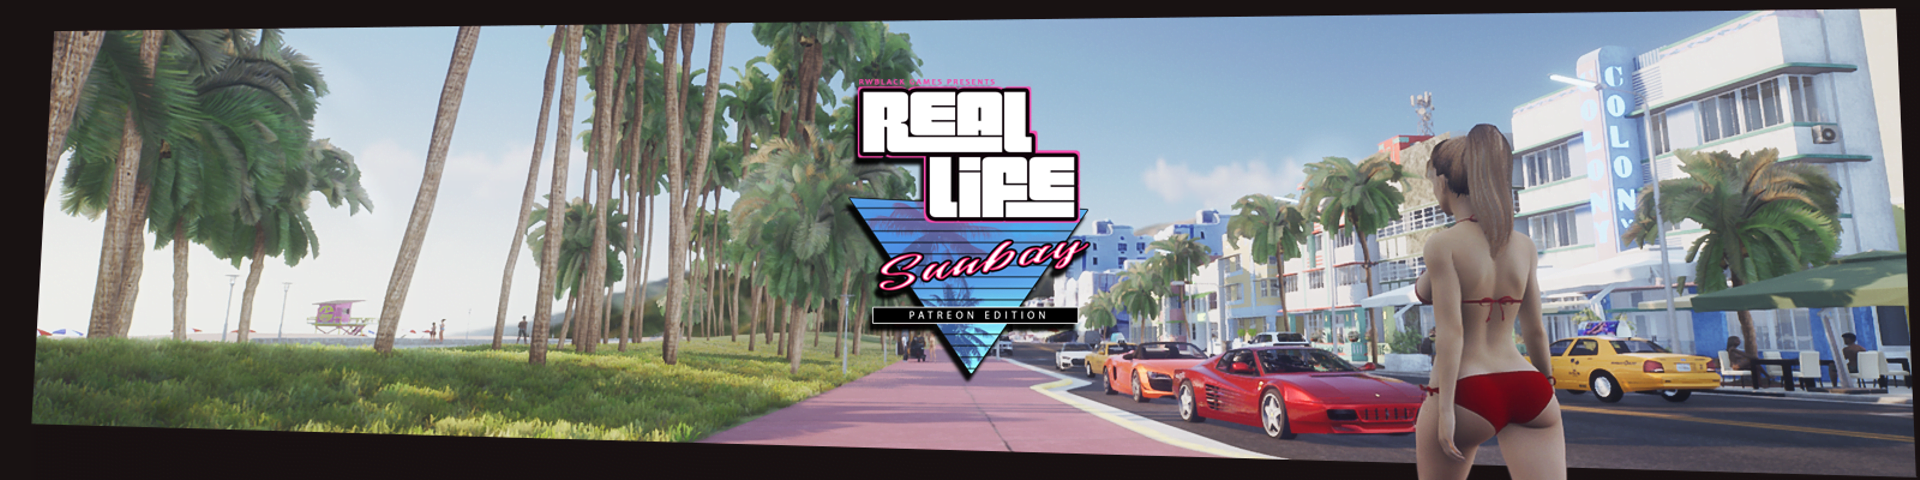 real life sunbay latest version free download